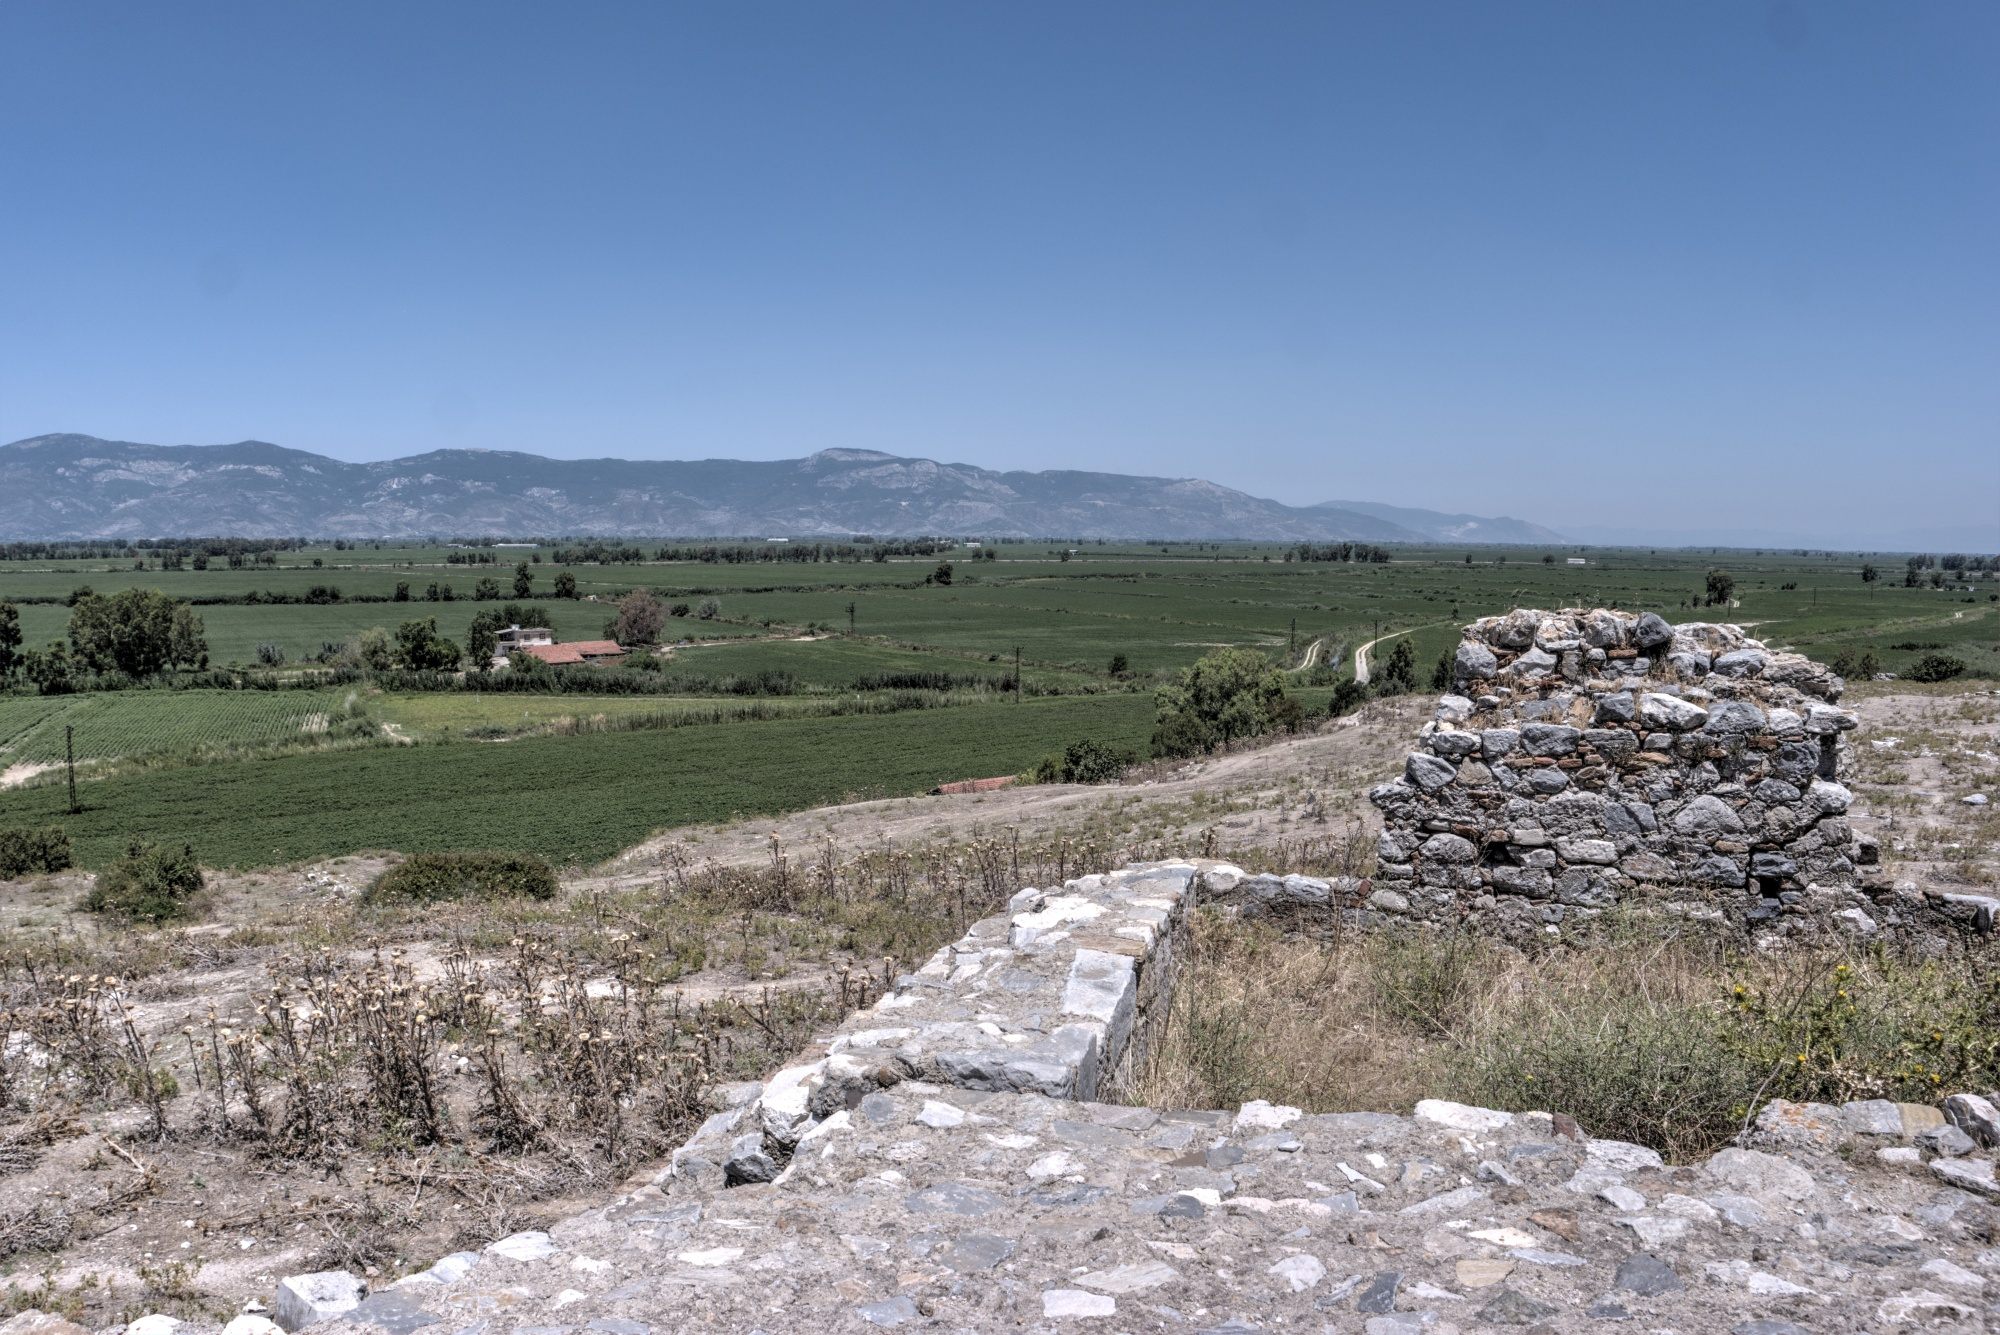 View of the Dilek Peninsula from the Byzantine-Ottoman fortress of Miletus